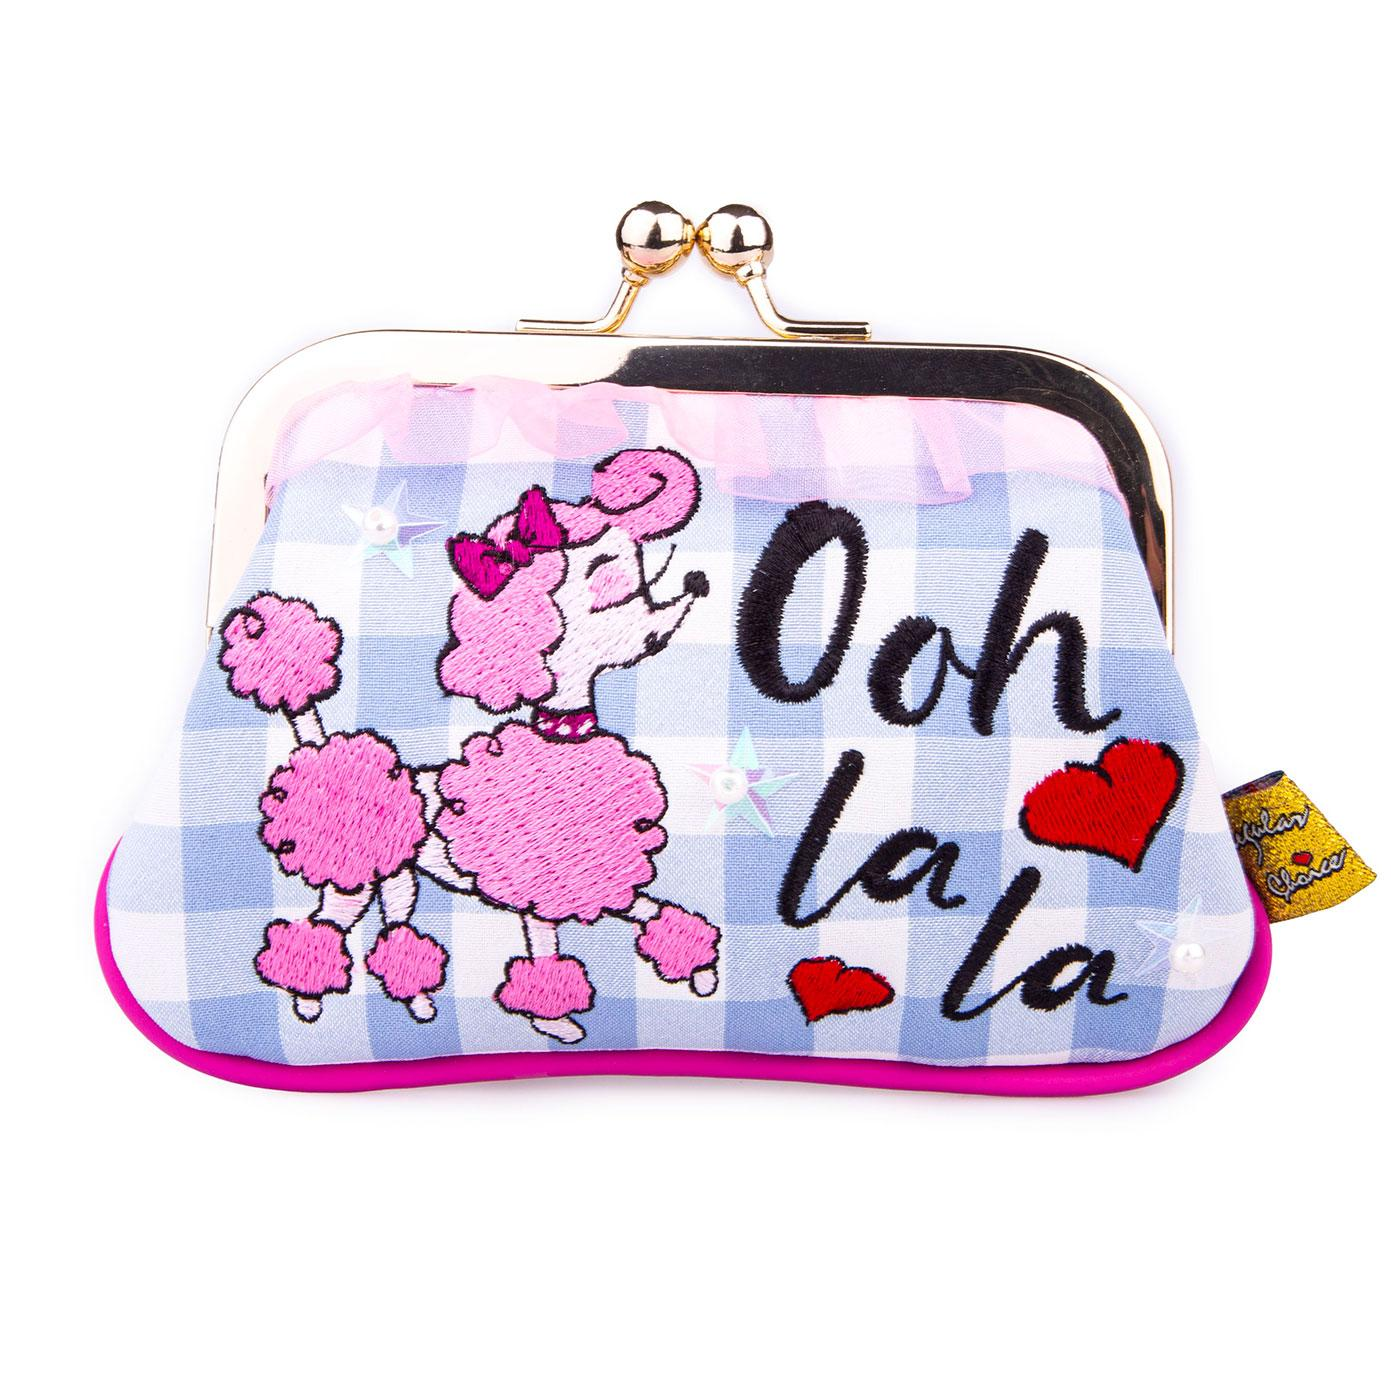 Park Princess IRREGULAR CHOICE Poodle Purse